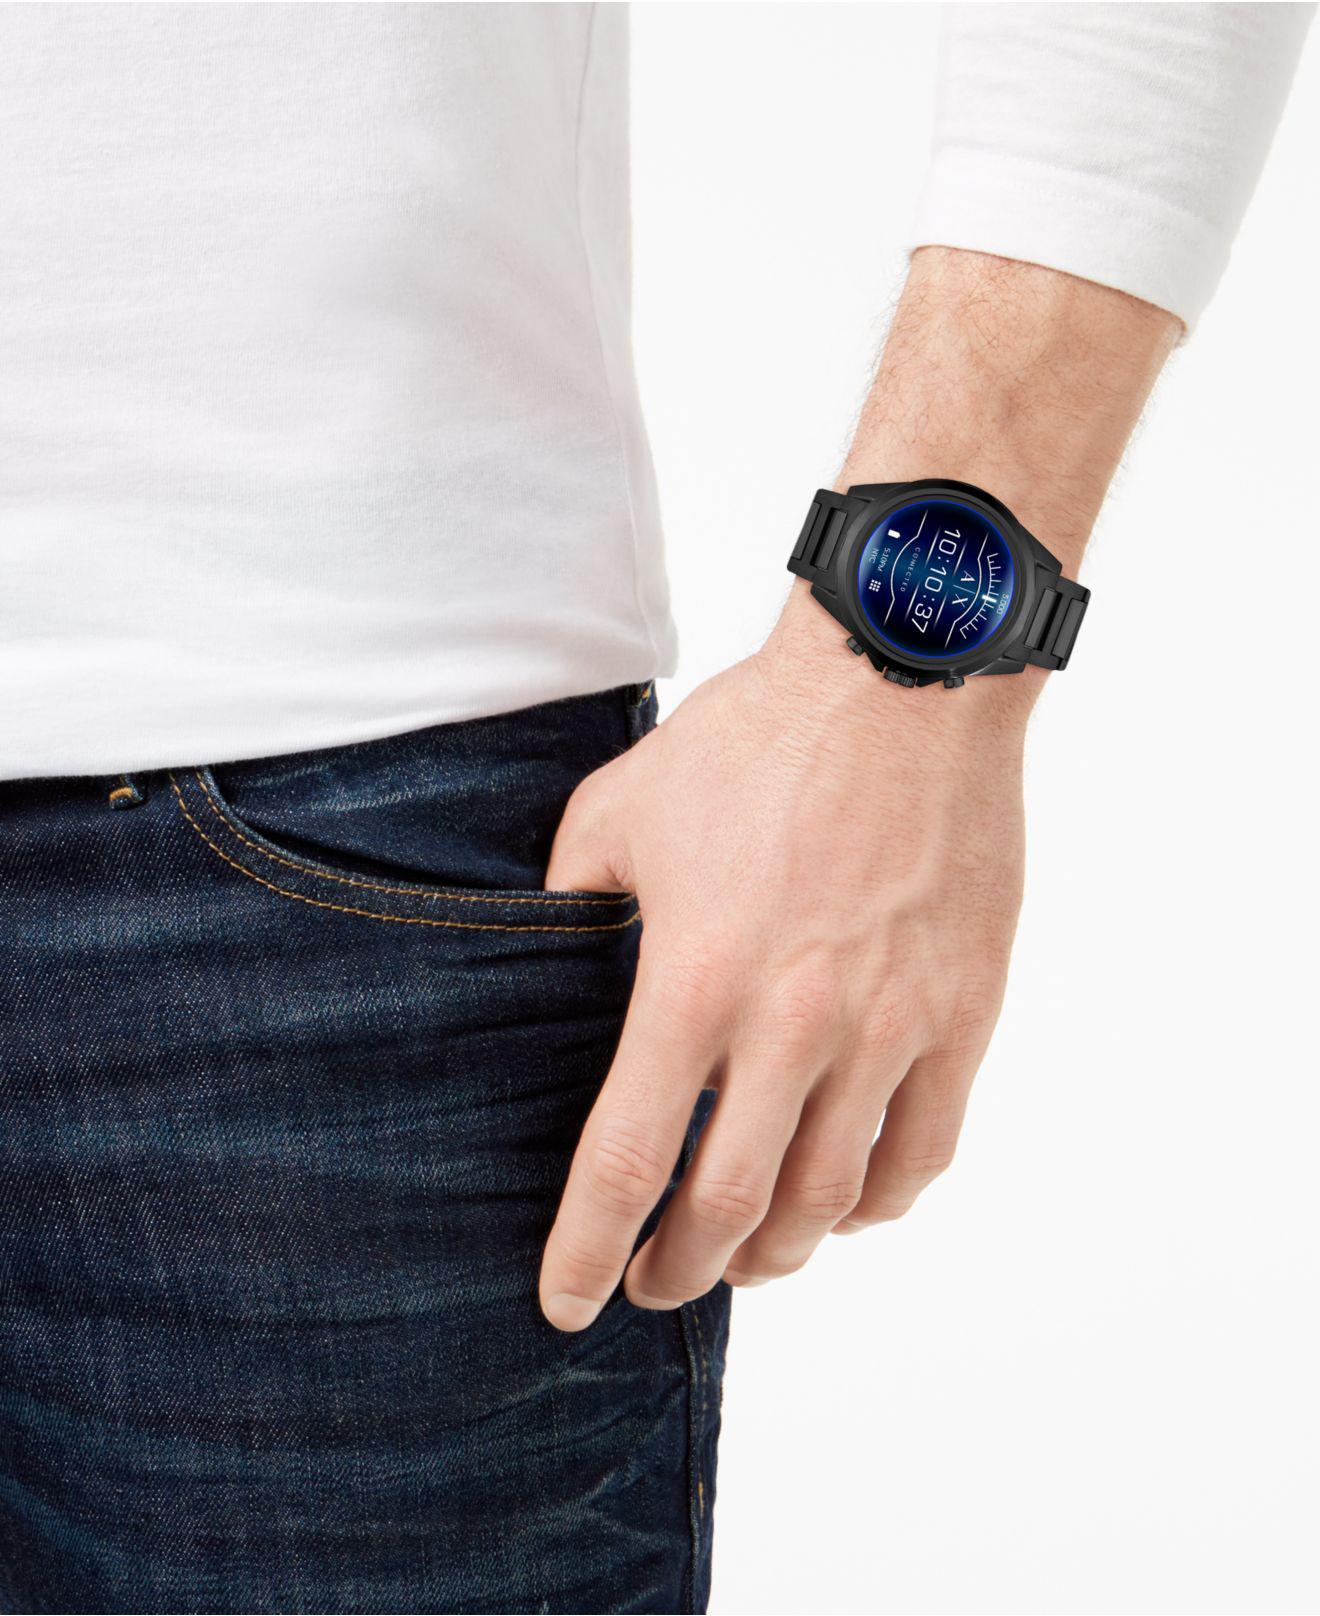 3bdc7beb1f0 Lyst - Armani Exchange Connected Black Stainless Steel Bracelet Touchscreen  Smart Watch 48mm in Black for Men